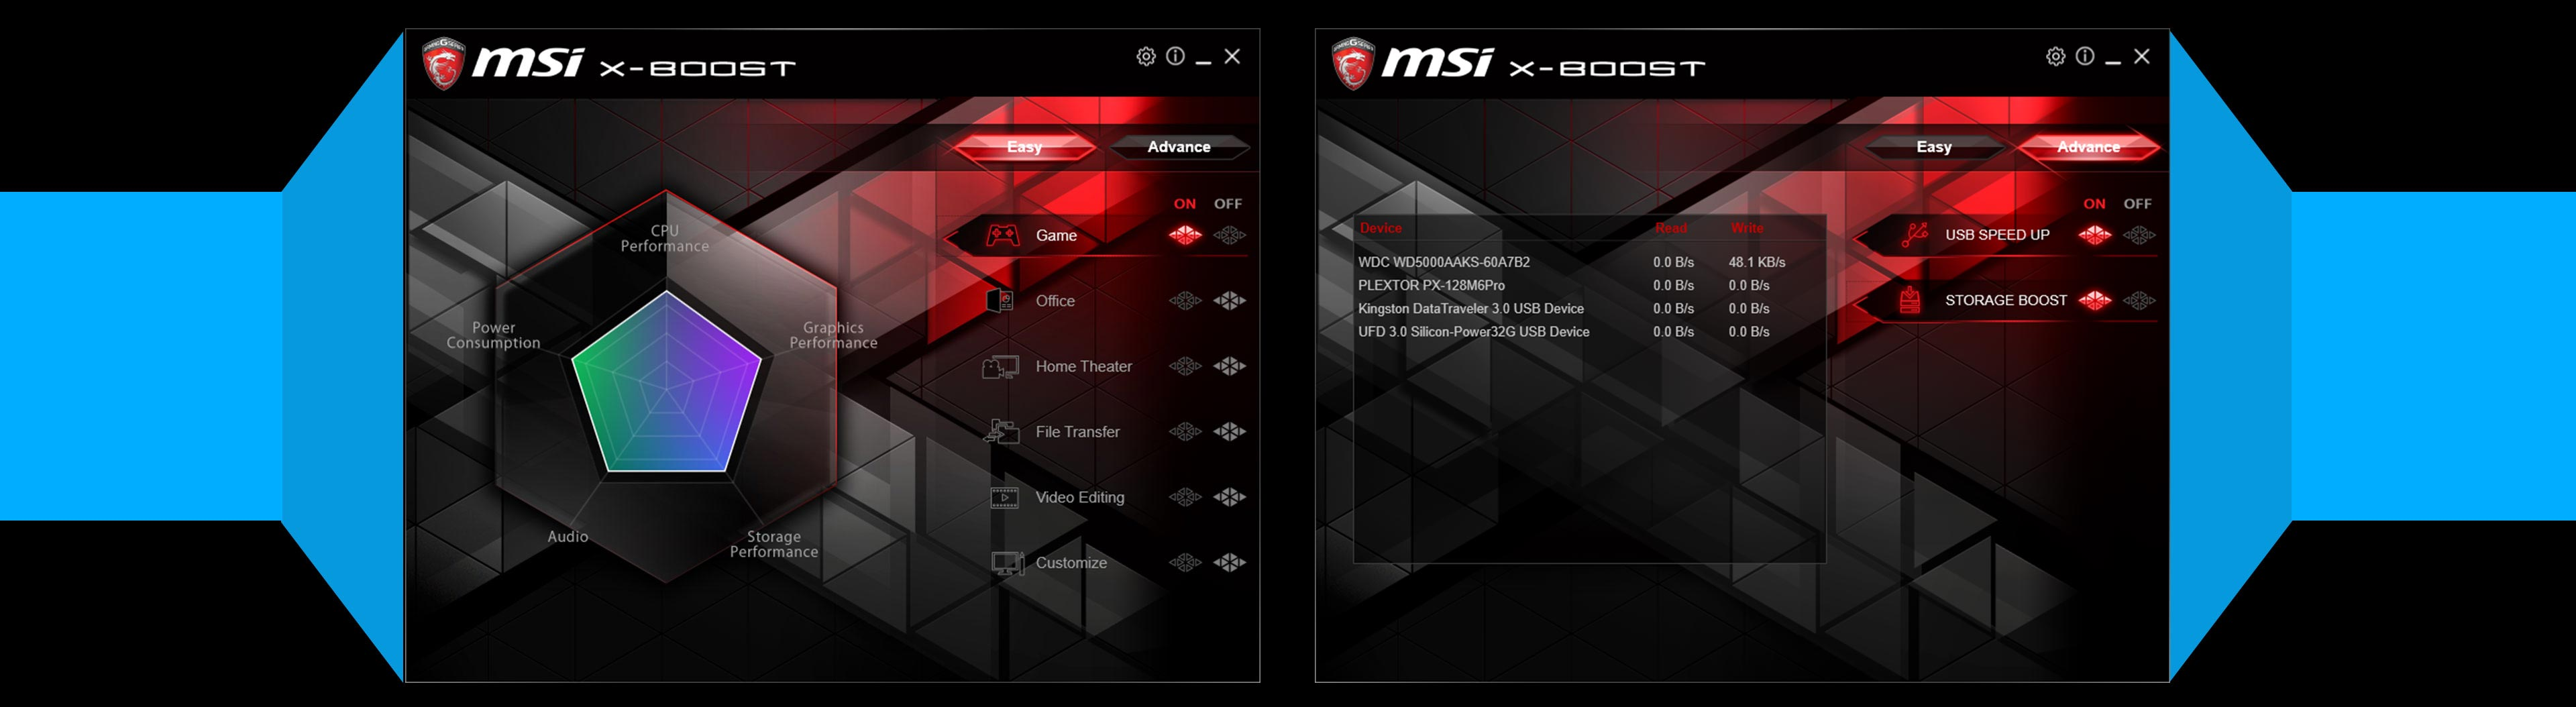 https://asset.msi.com/global/picture/image/feature/mb/X299/X299-sli-plus/X299-software_XboostPro.jpg